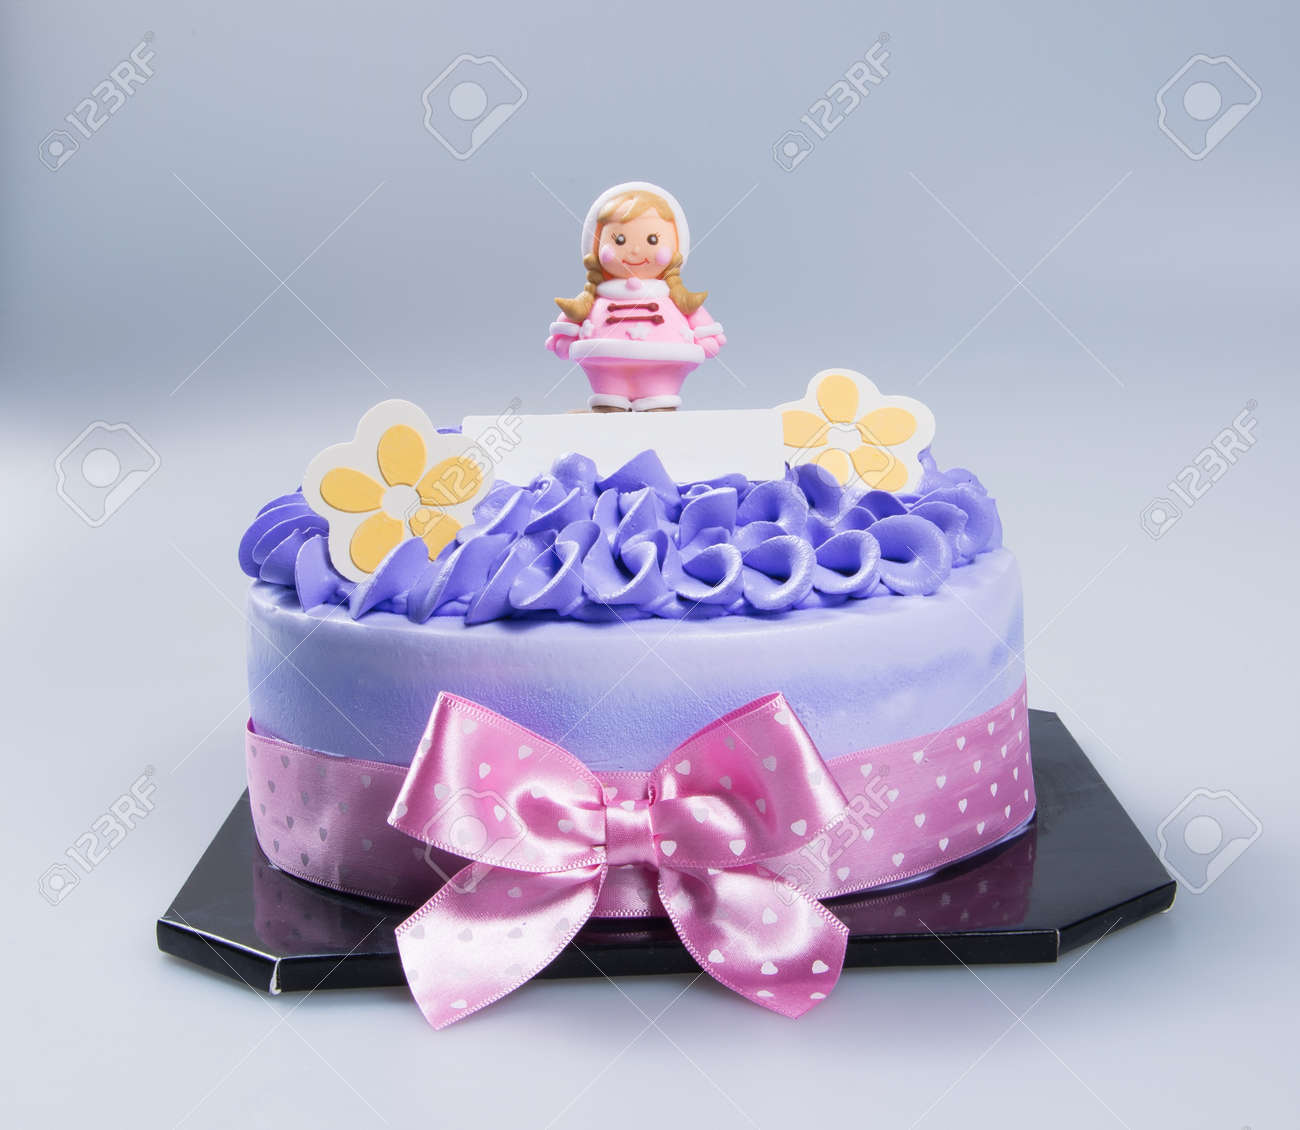 Cake Happy Mother Day Cake On A Background Stock Photo 78880628